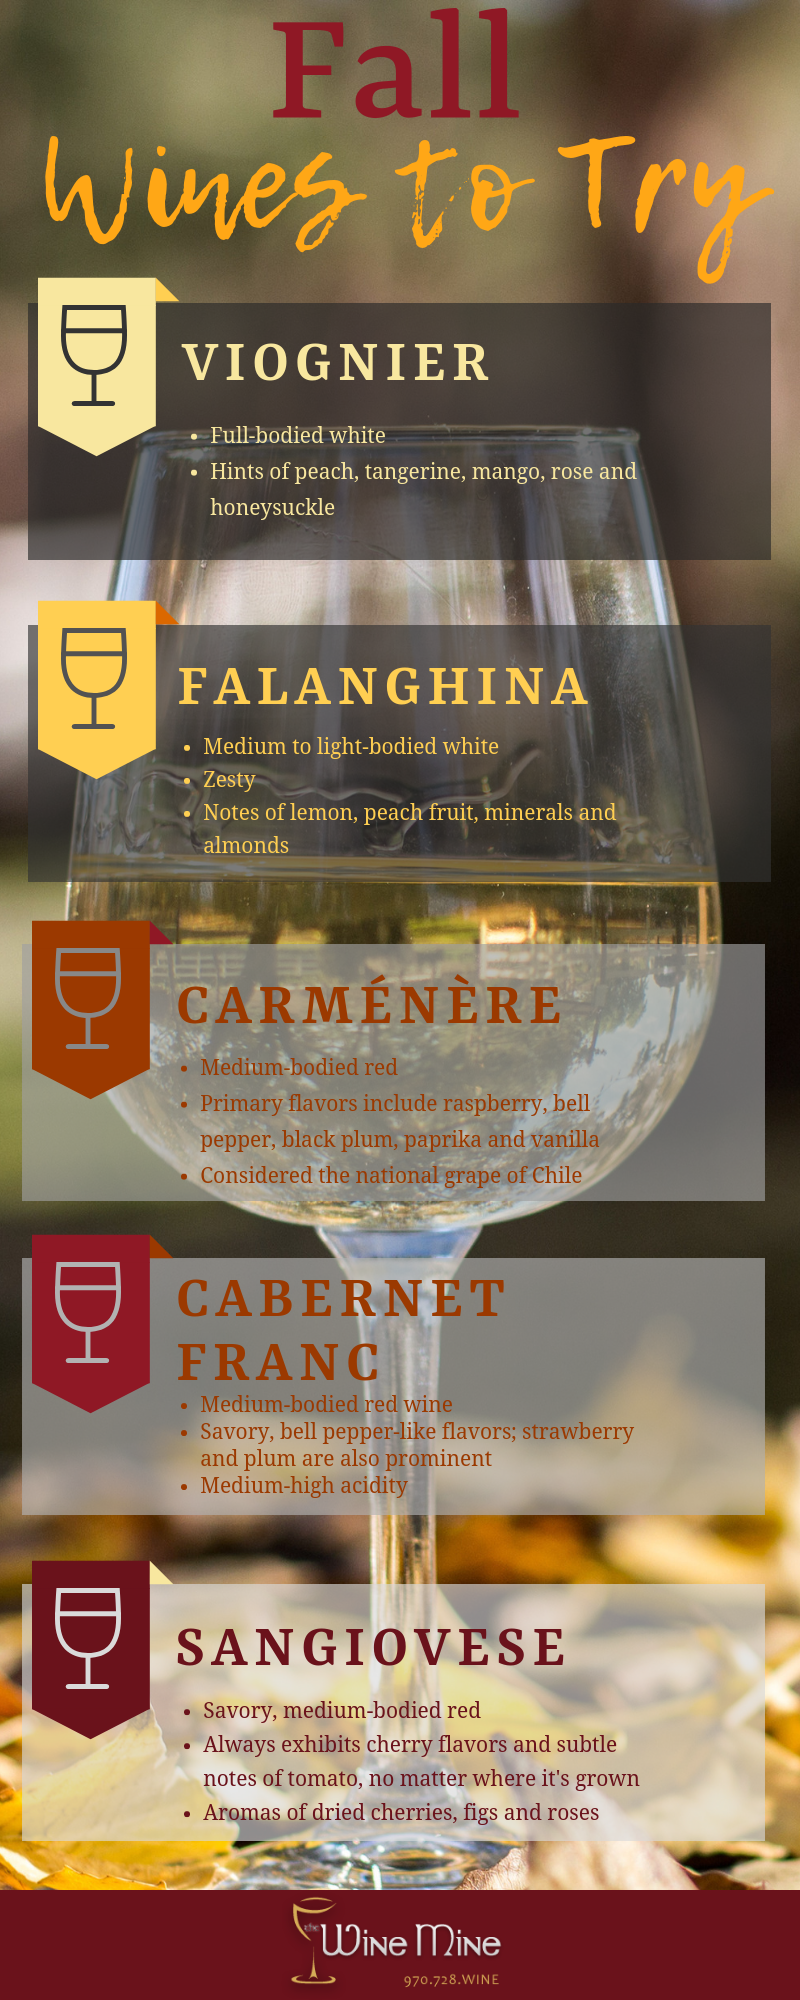 WineMine-fallwines-infographic.png